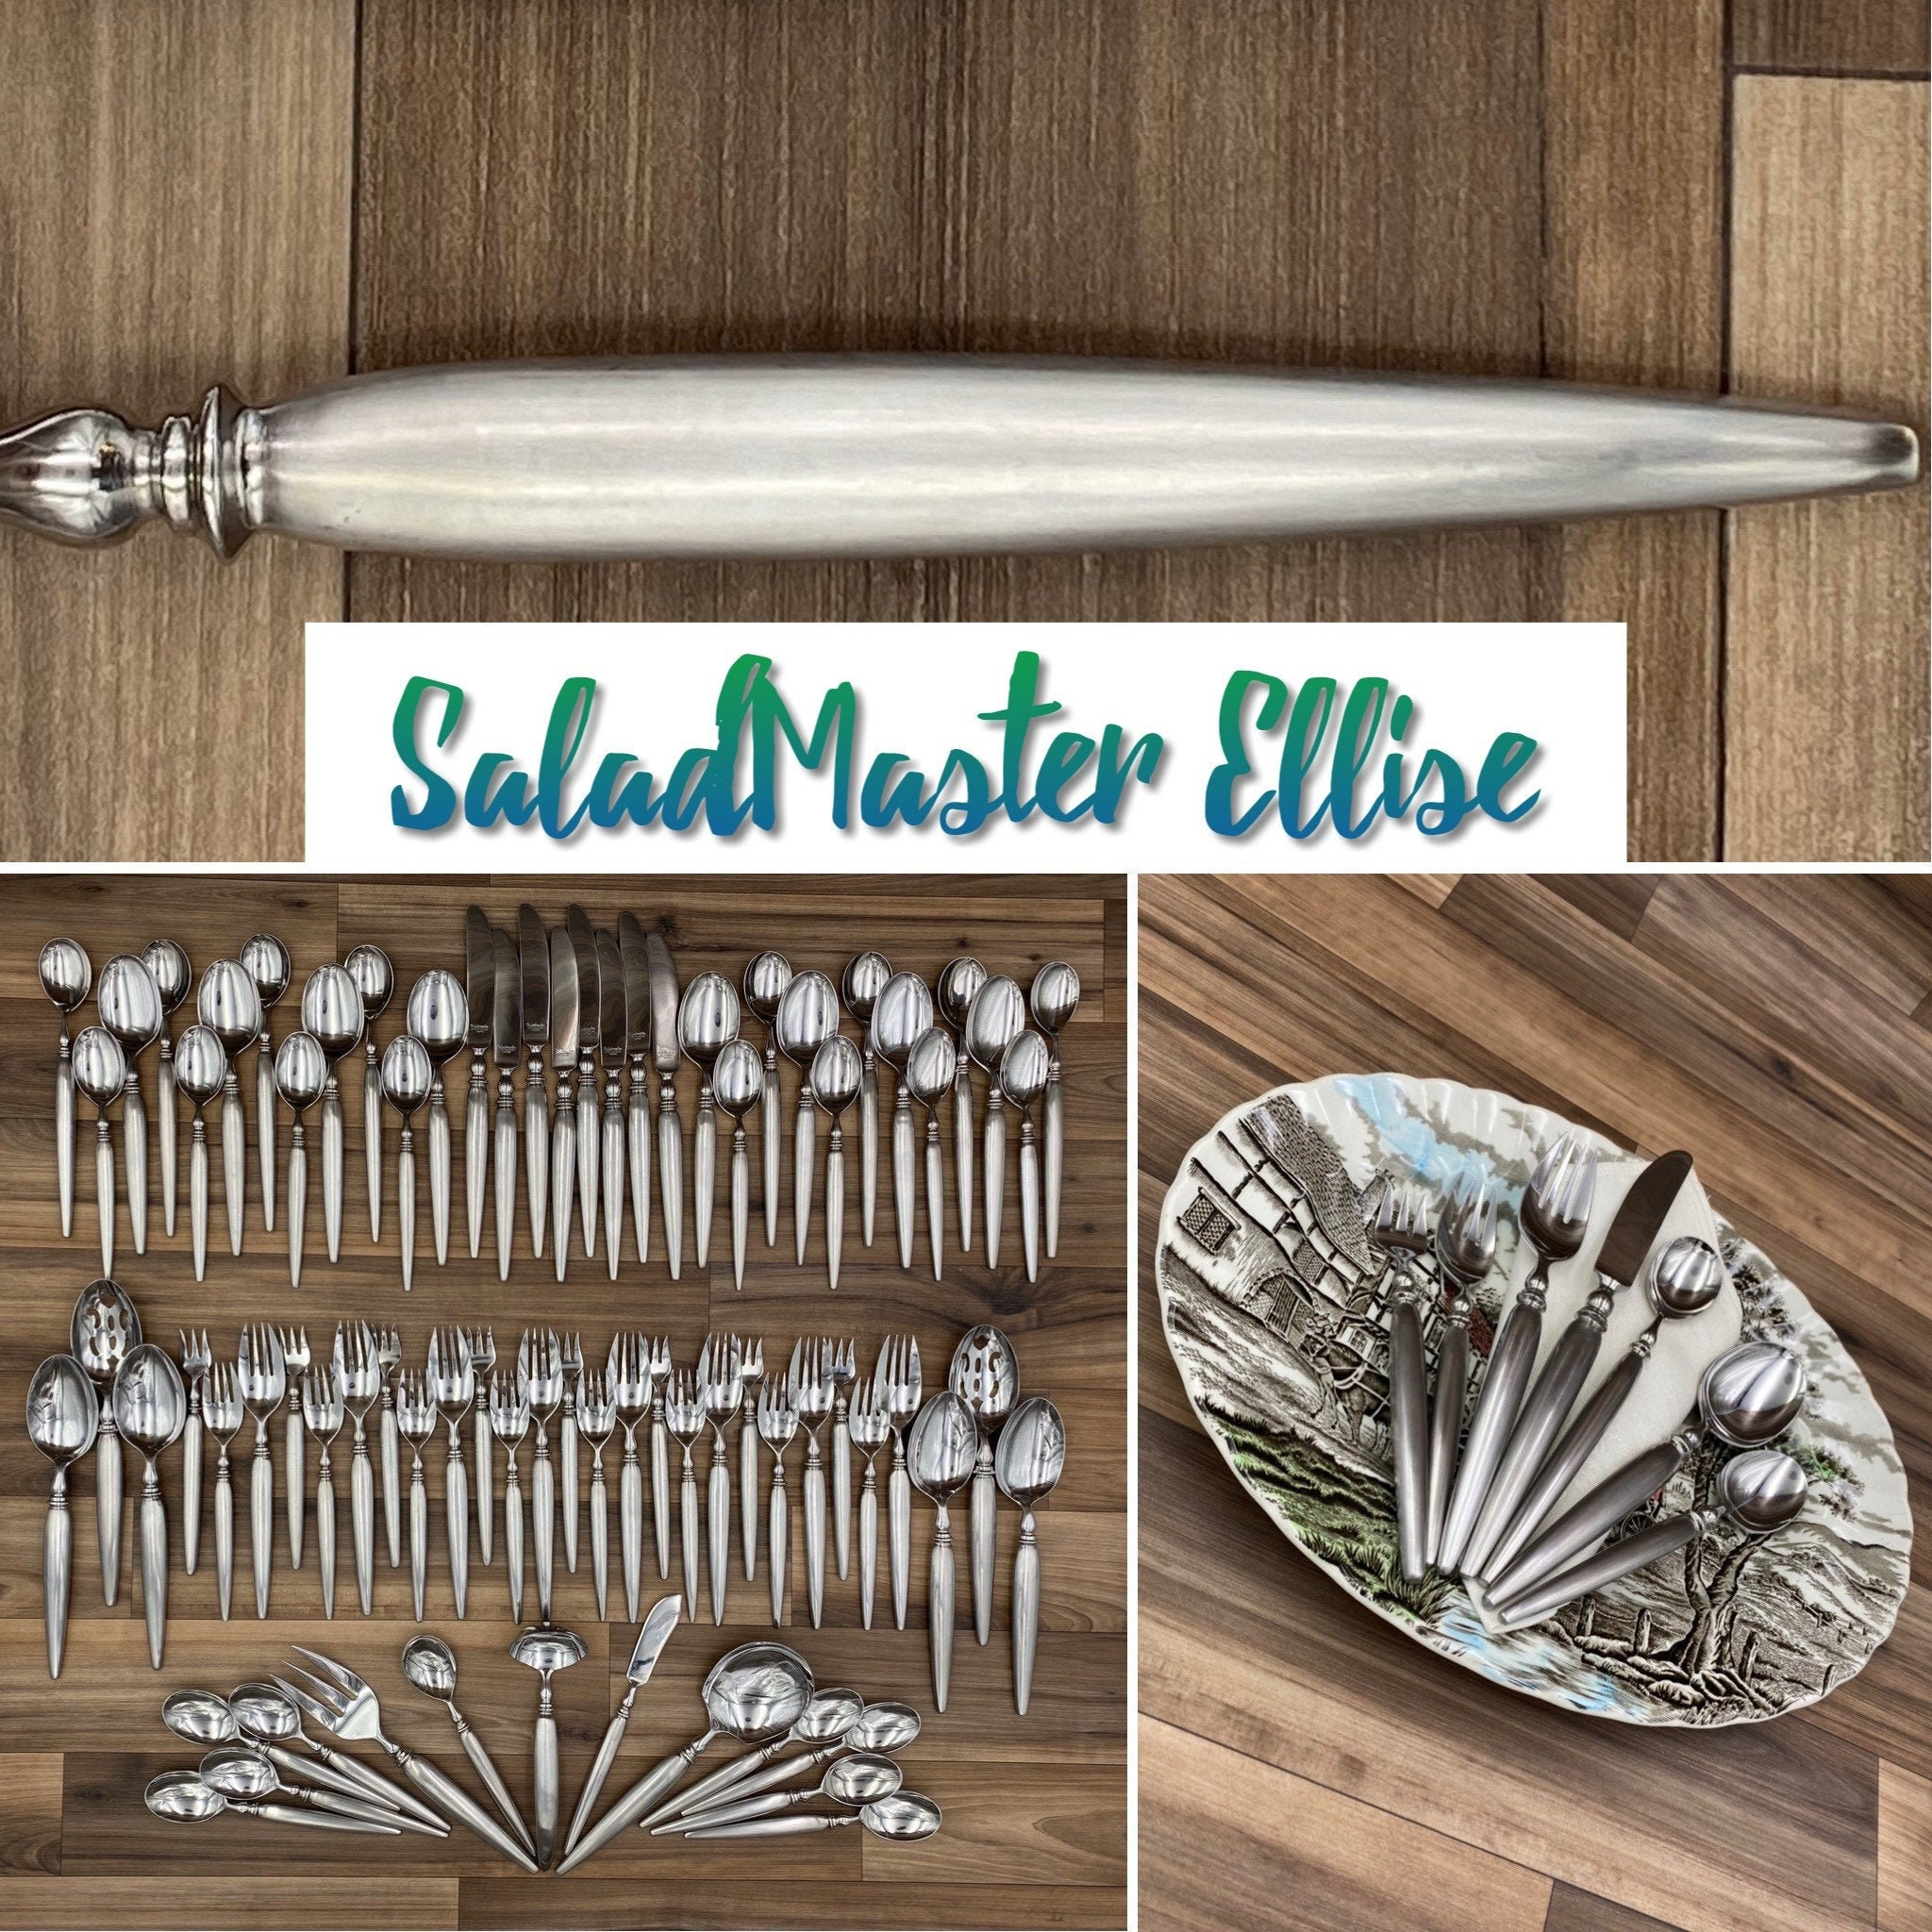 Rare Flatware Set Vintage Saladmaster Ellise Complete Service For 8 Forged Cutlery Set Silverware Chest